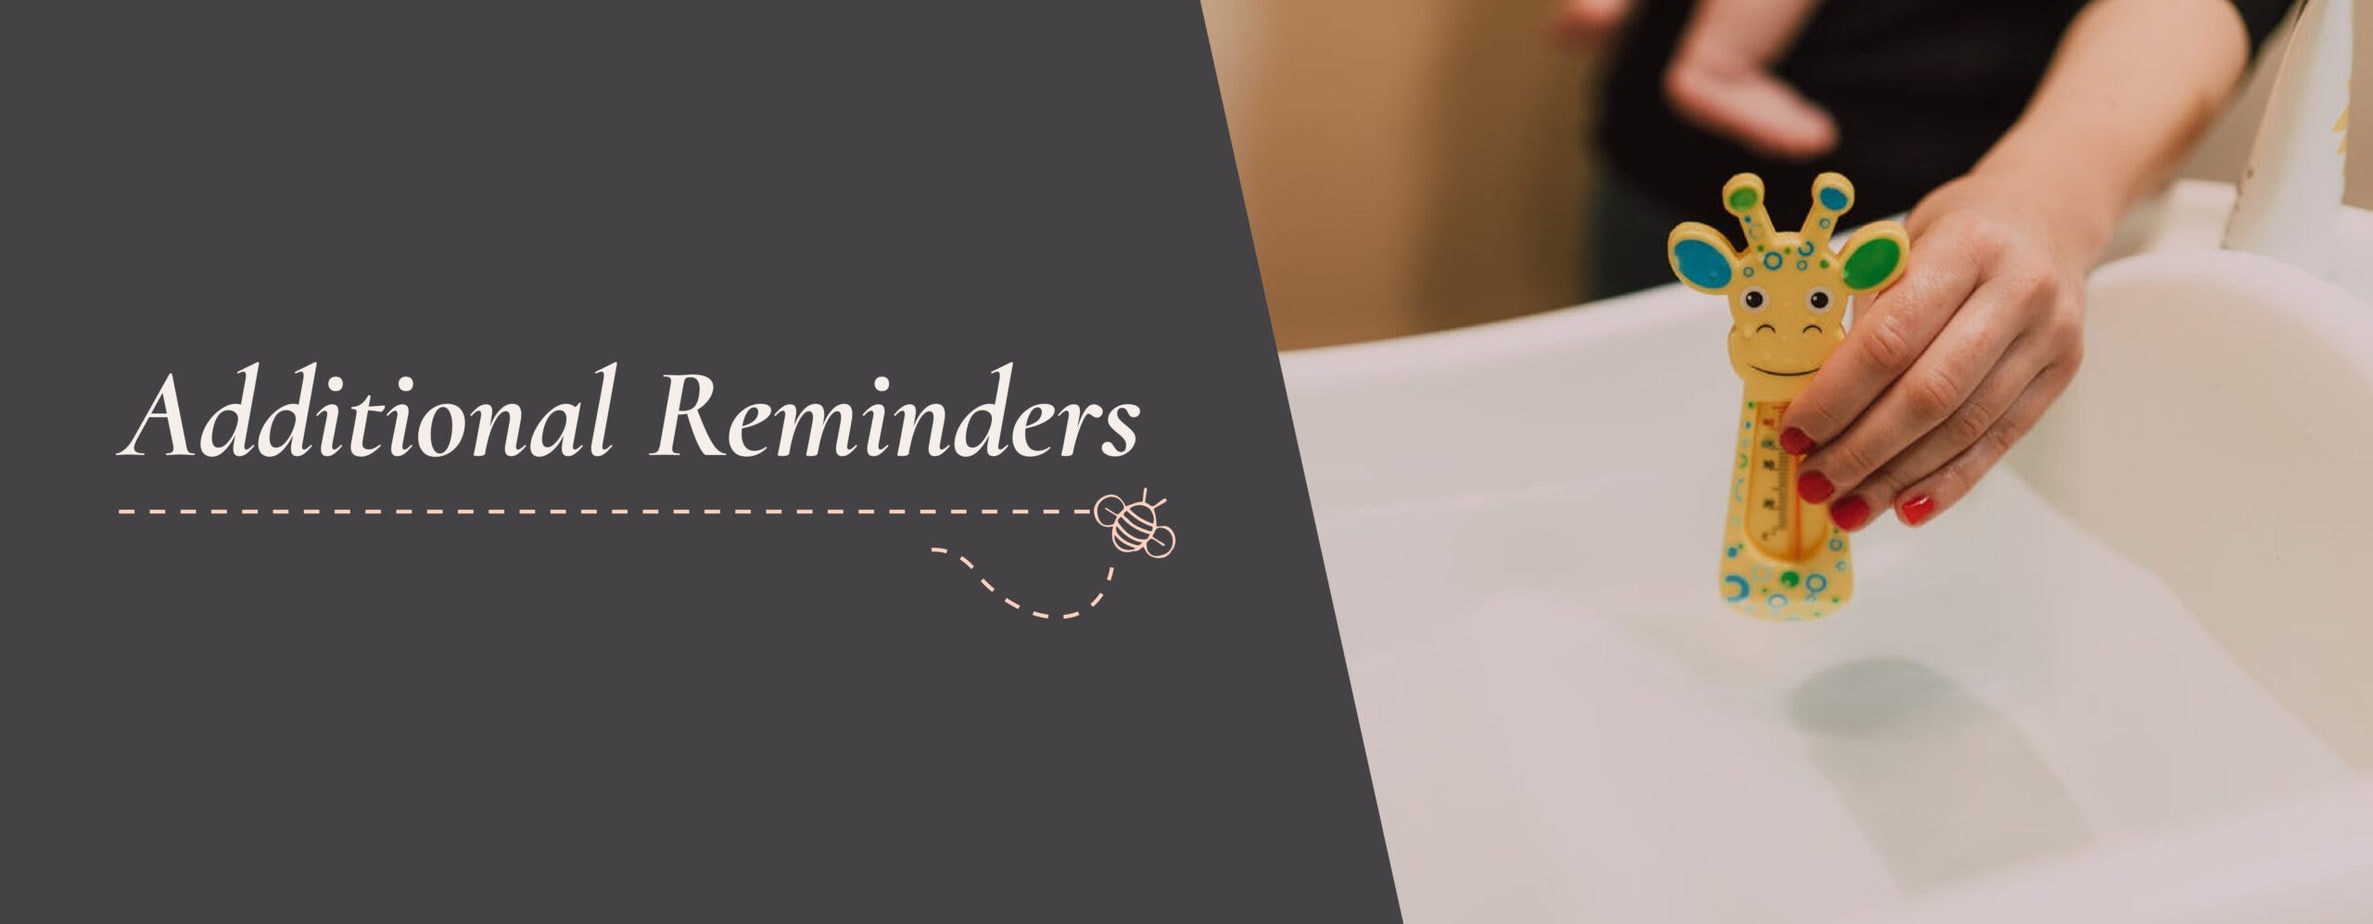 Additional Reminders